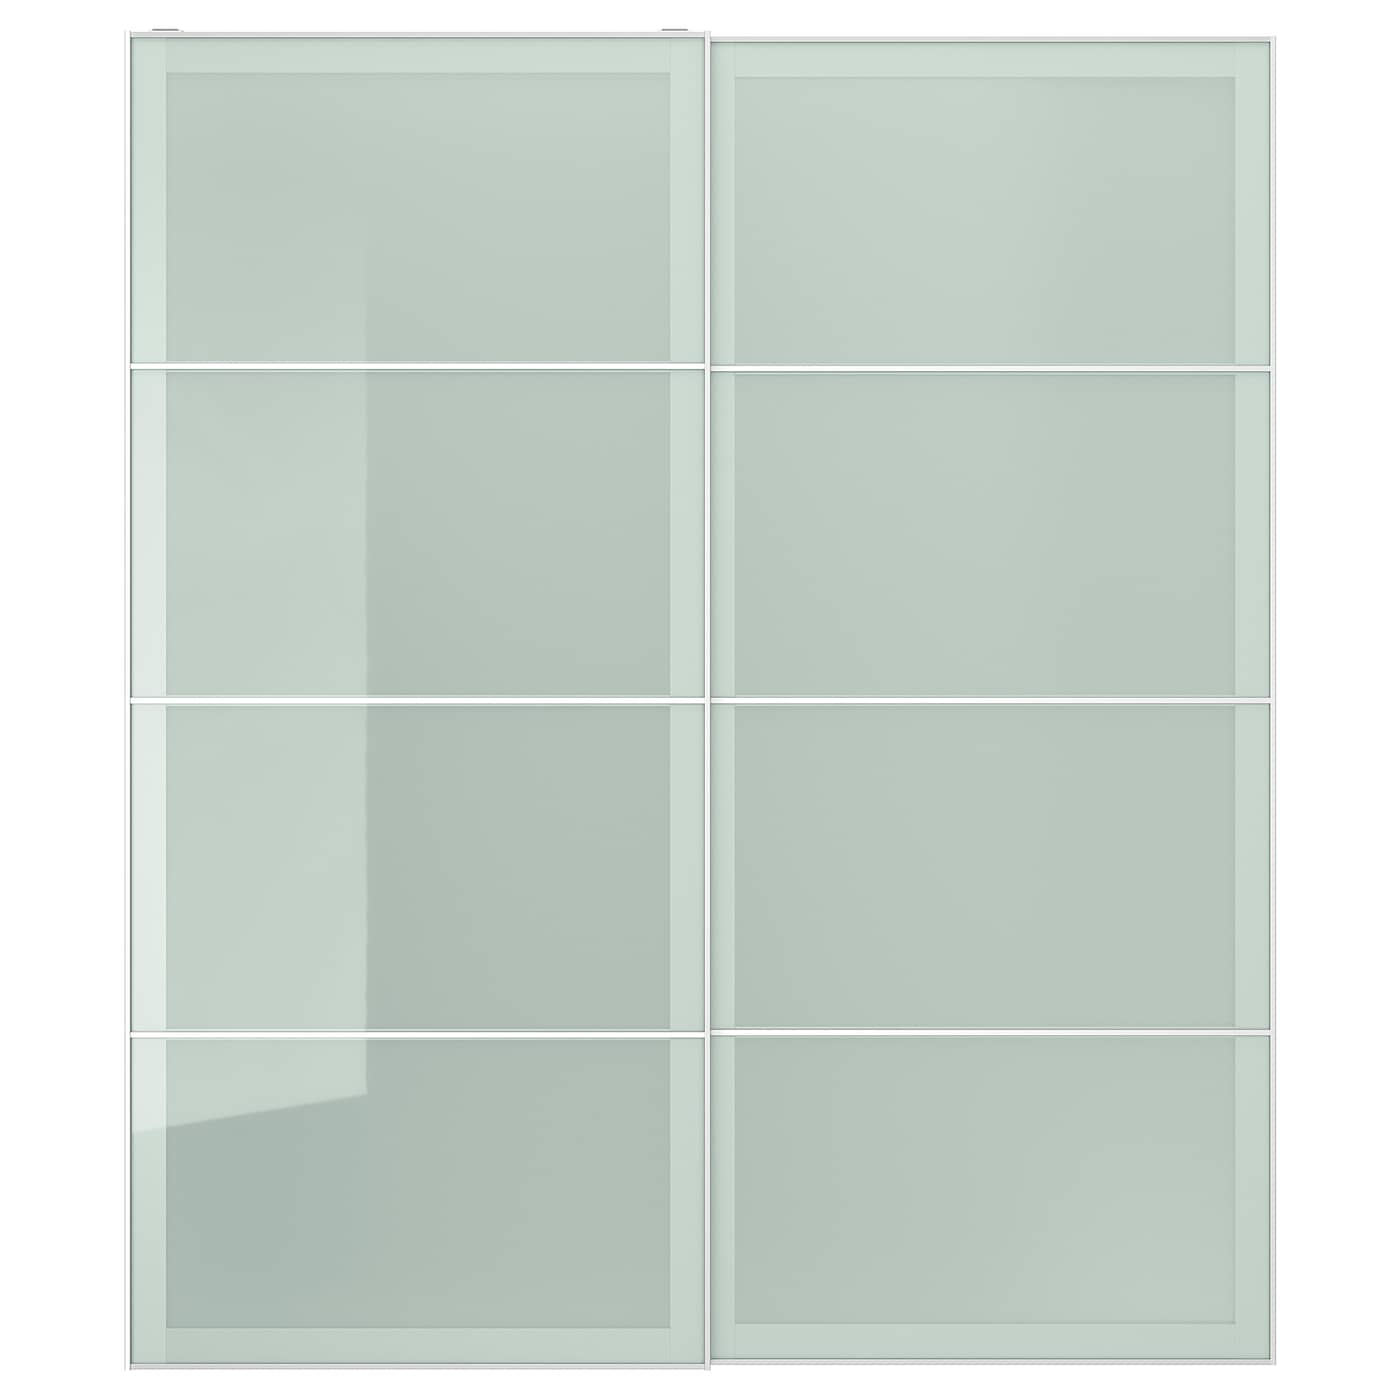 Sekken Pair Of Sliding Doors Frosted Glass 78 3 4x92 7 8 Ikea